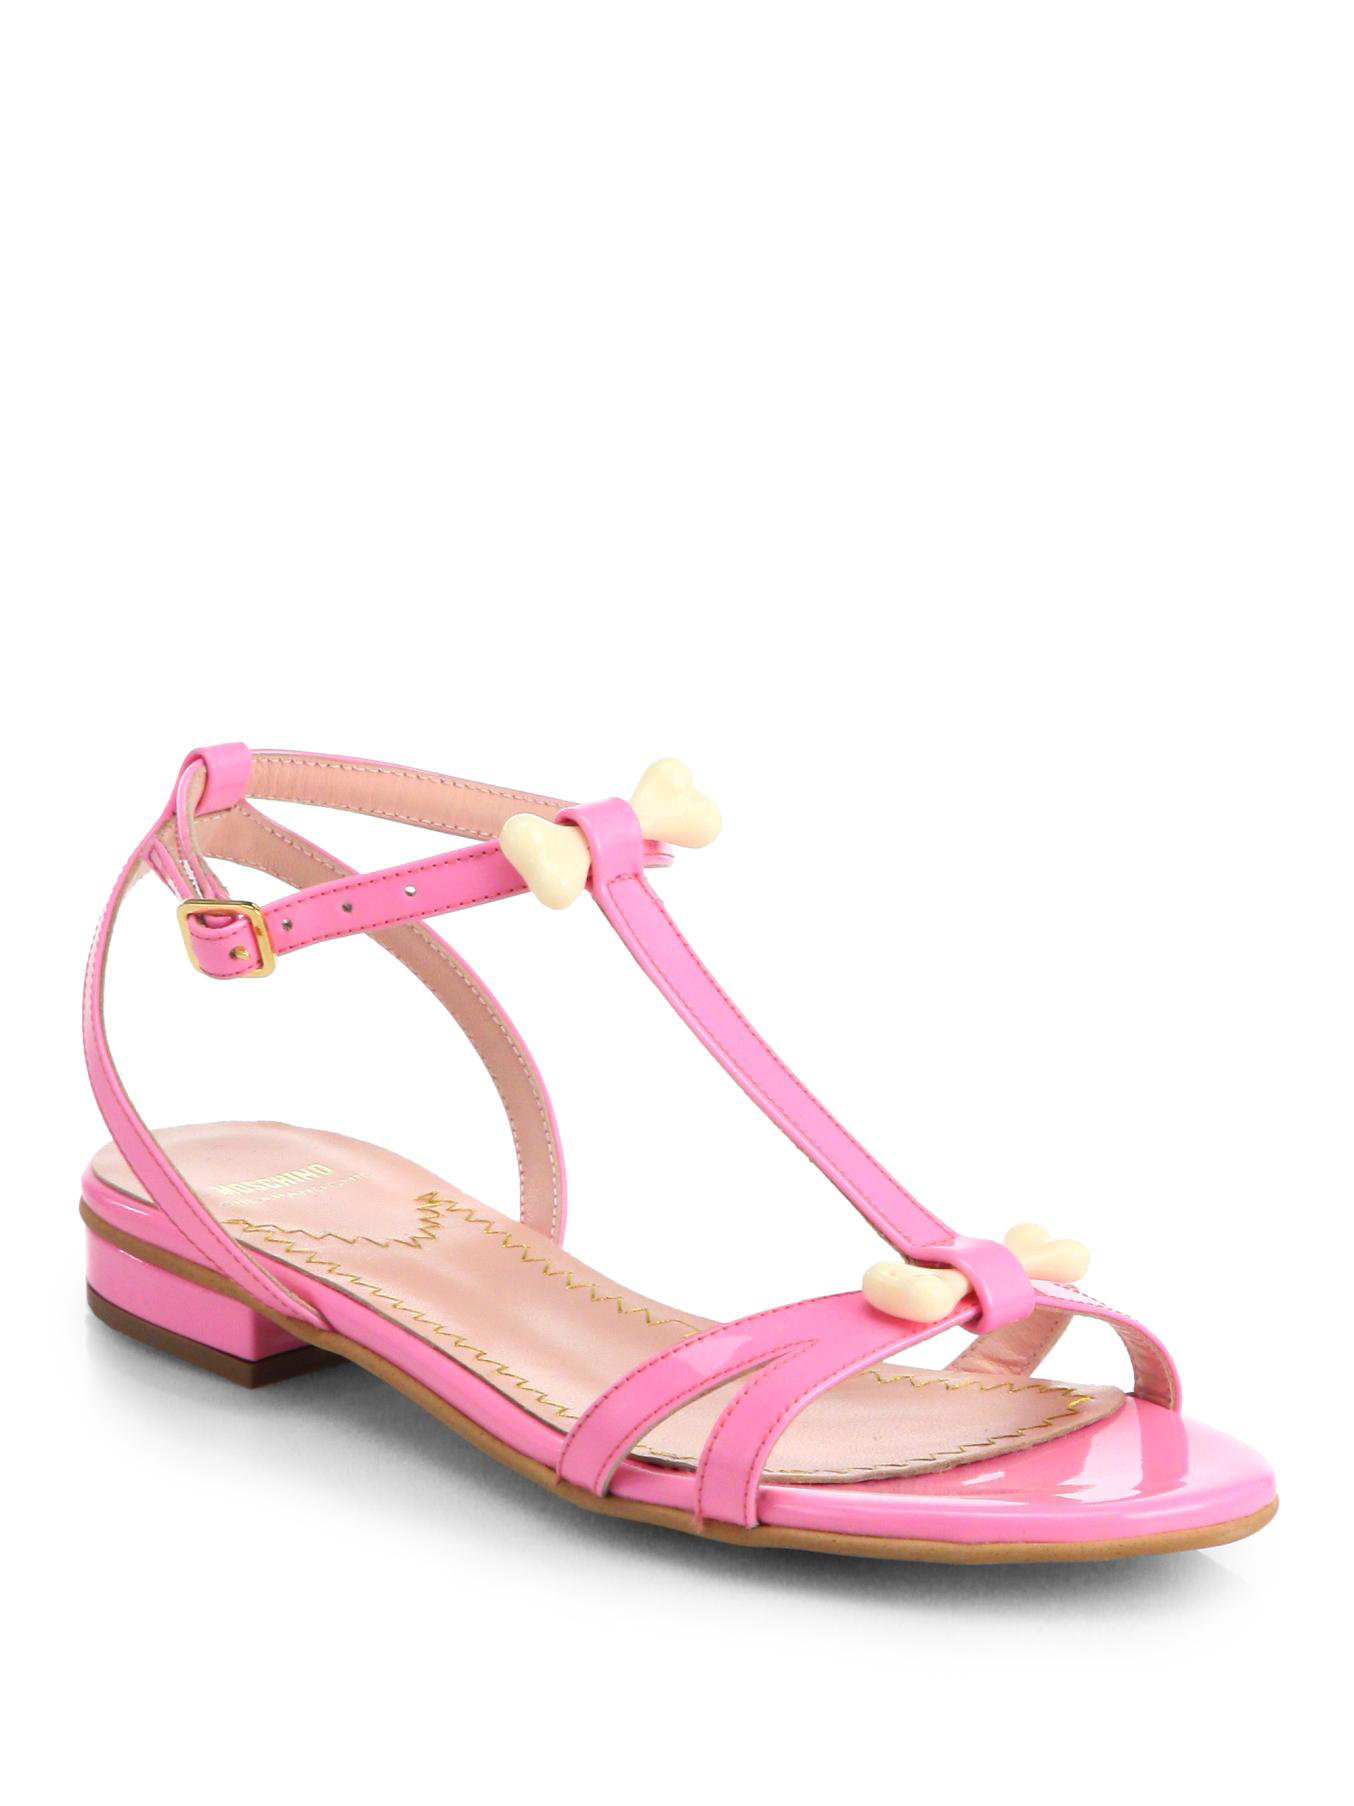 discount marketable with mastercard Moschino Cheap and Chic Embellished Leather Sandals cheap sale under $60 Kd2PjjY4tc